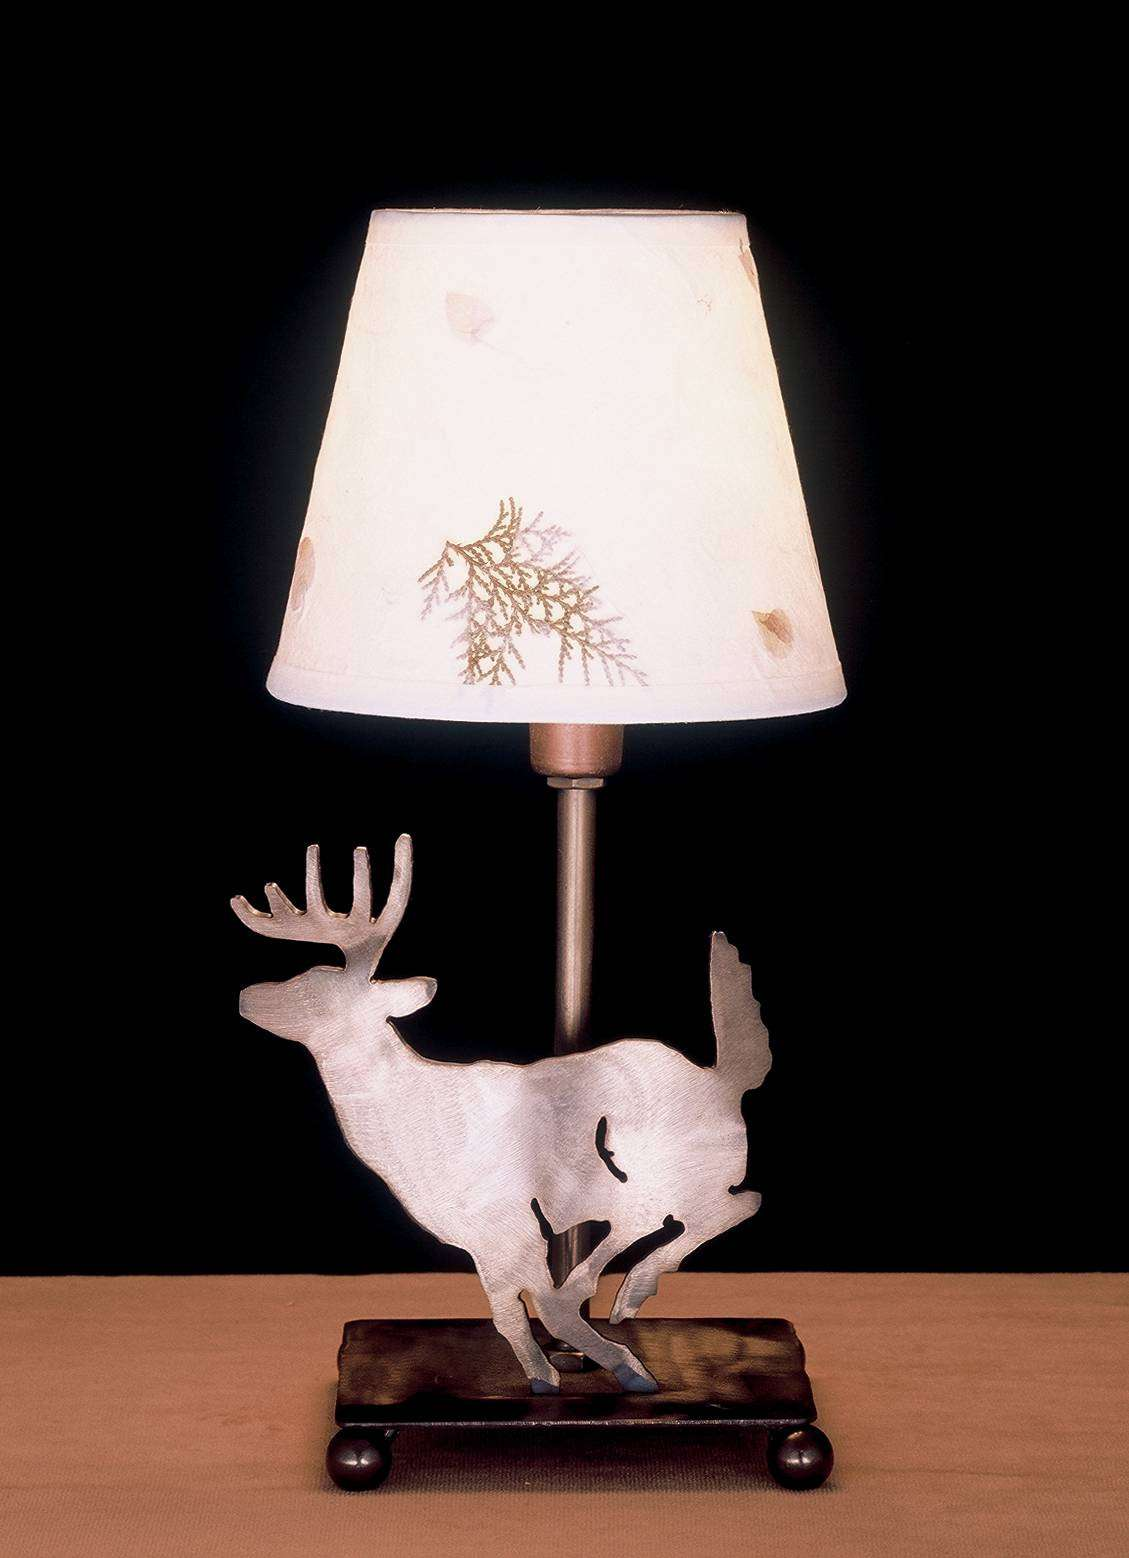 Meyda Tiffany 38771 Lone Deer Parchment Shade Accent Lamp in Antique Copper finish